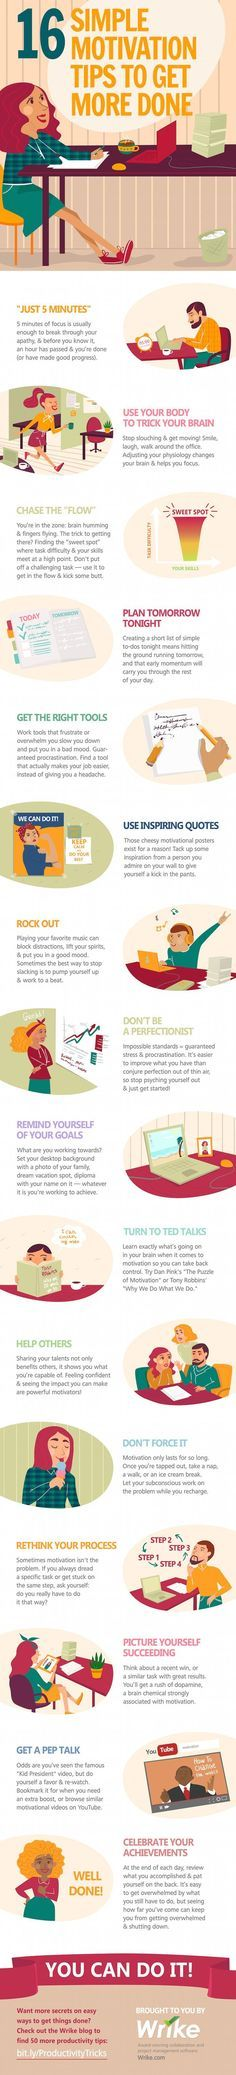 Simple motivational tips to get things moving, for when you are at rock bottom, stuck in a rut, stressed or exhausted.